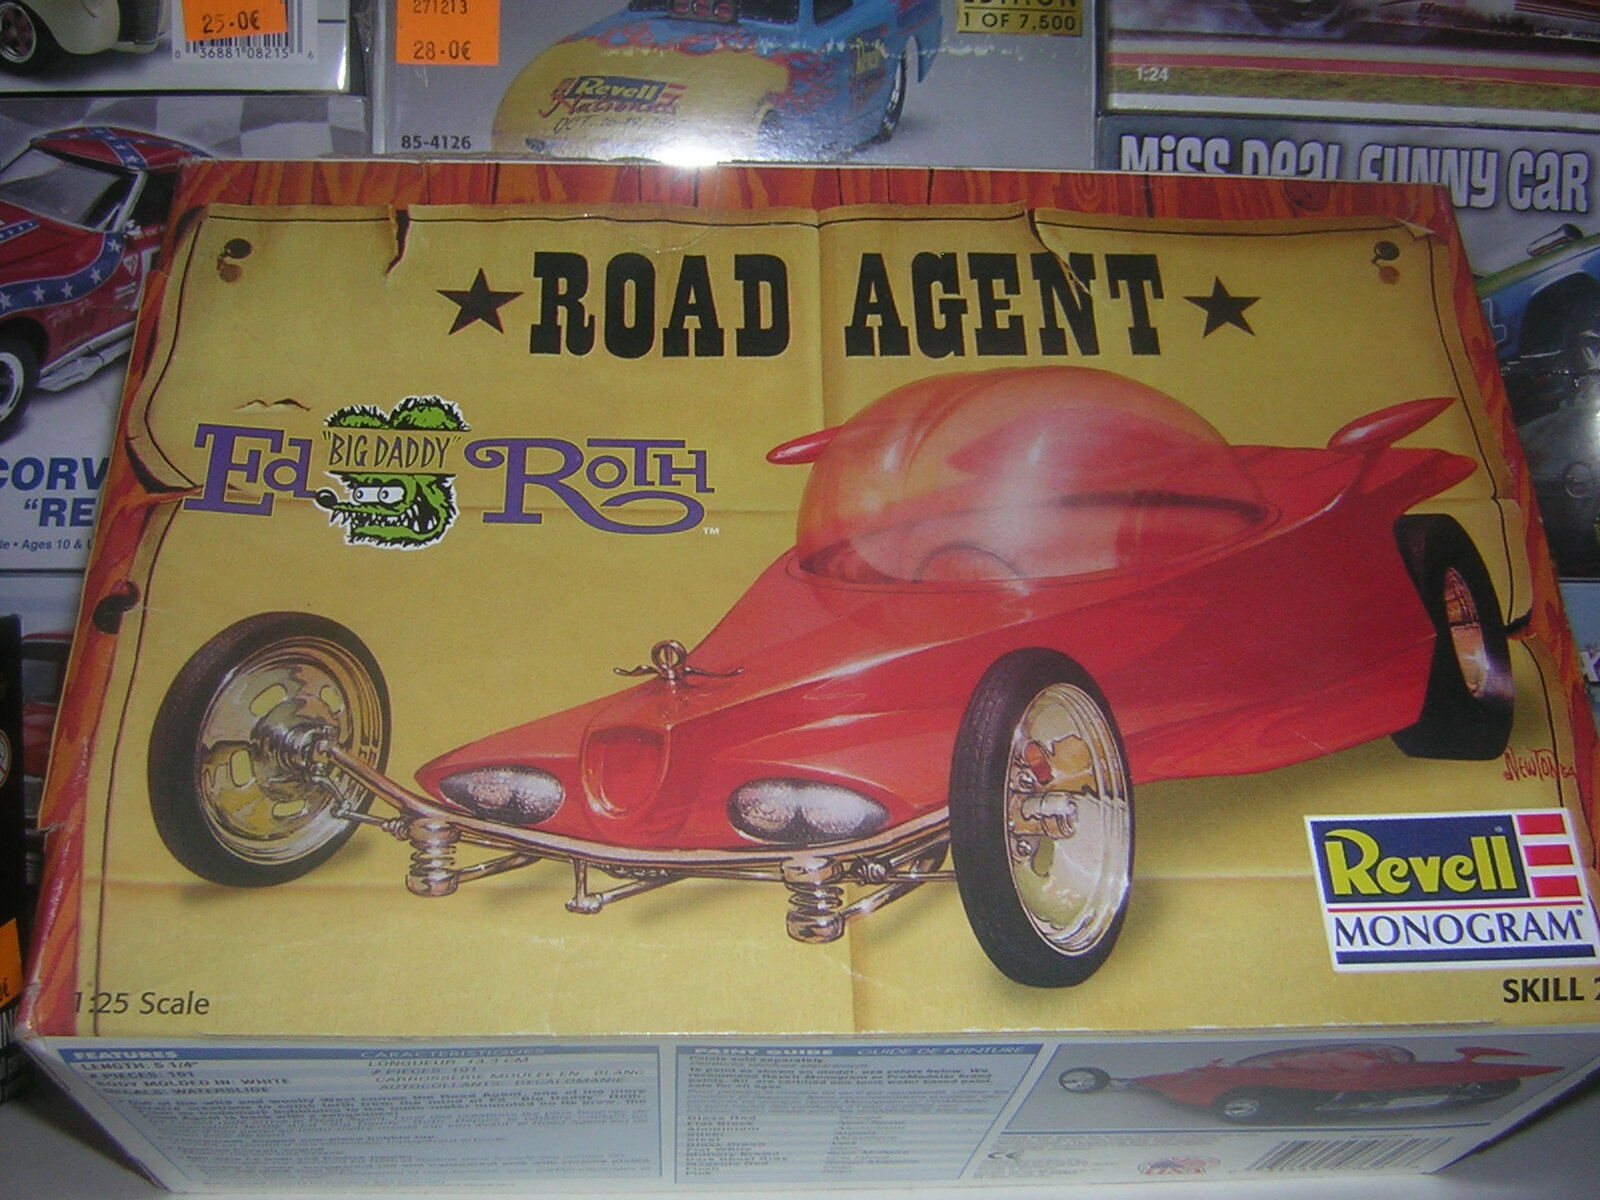 1 25 ROAD AGENT  by Big Daddy rougeh  hot rod REVELL